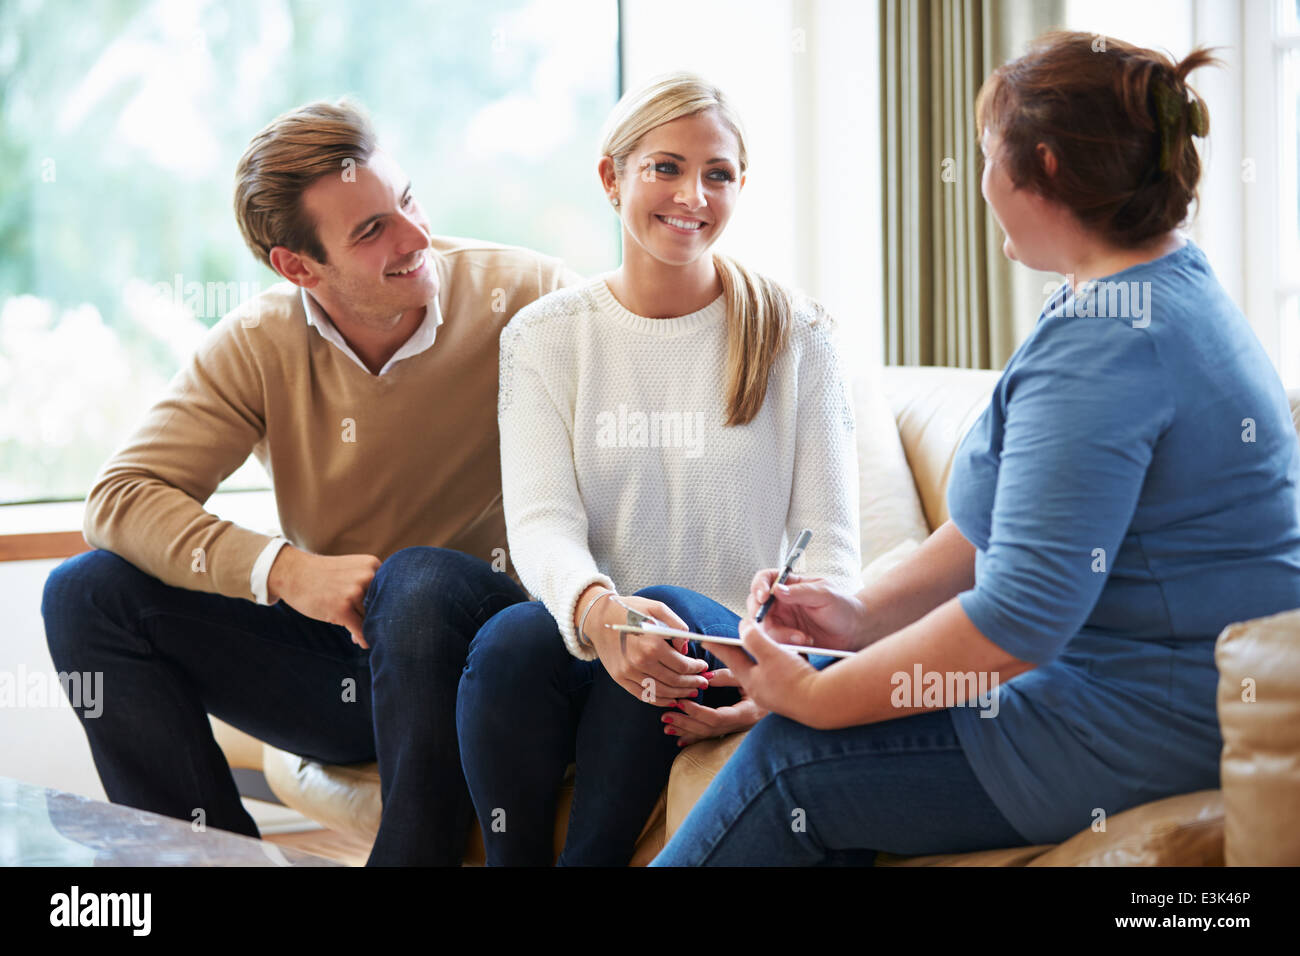 Counselor Advising Couple On Relationship Difficulties - Stock Image